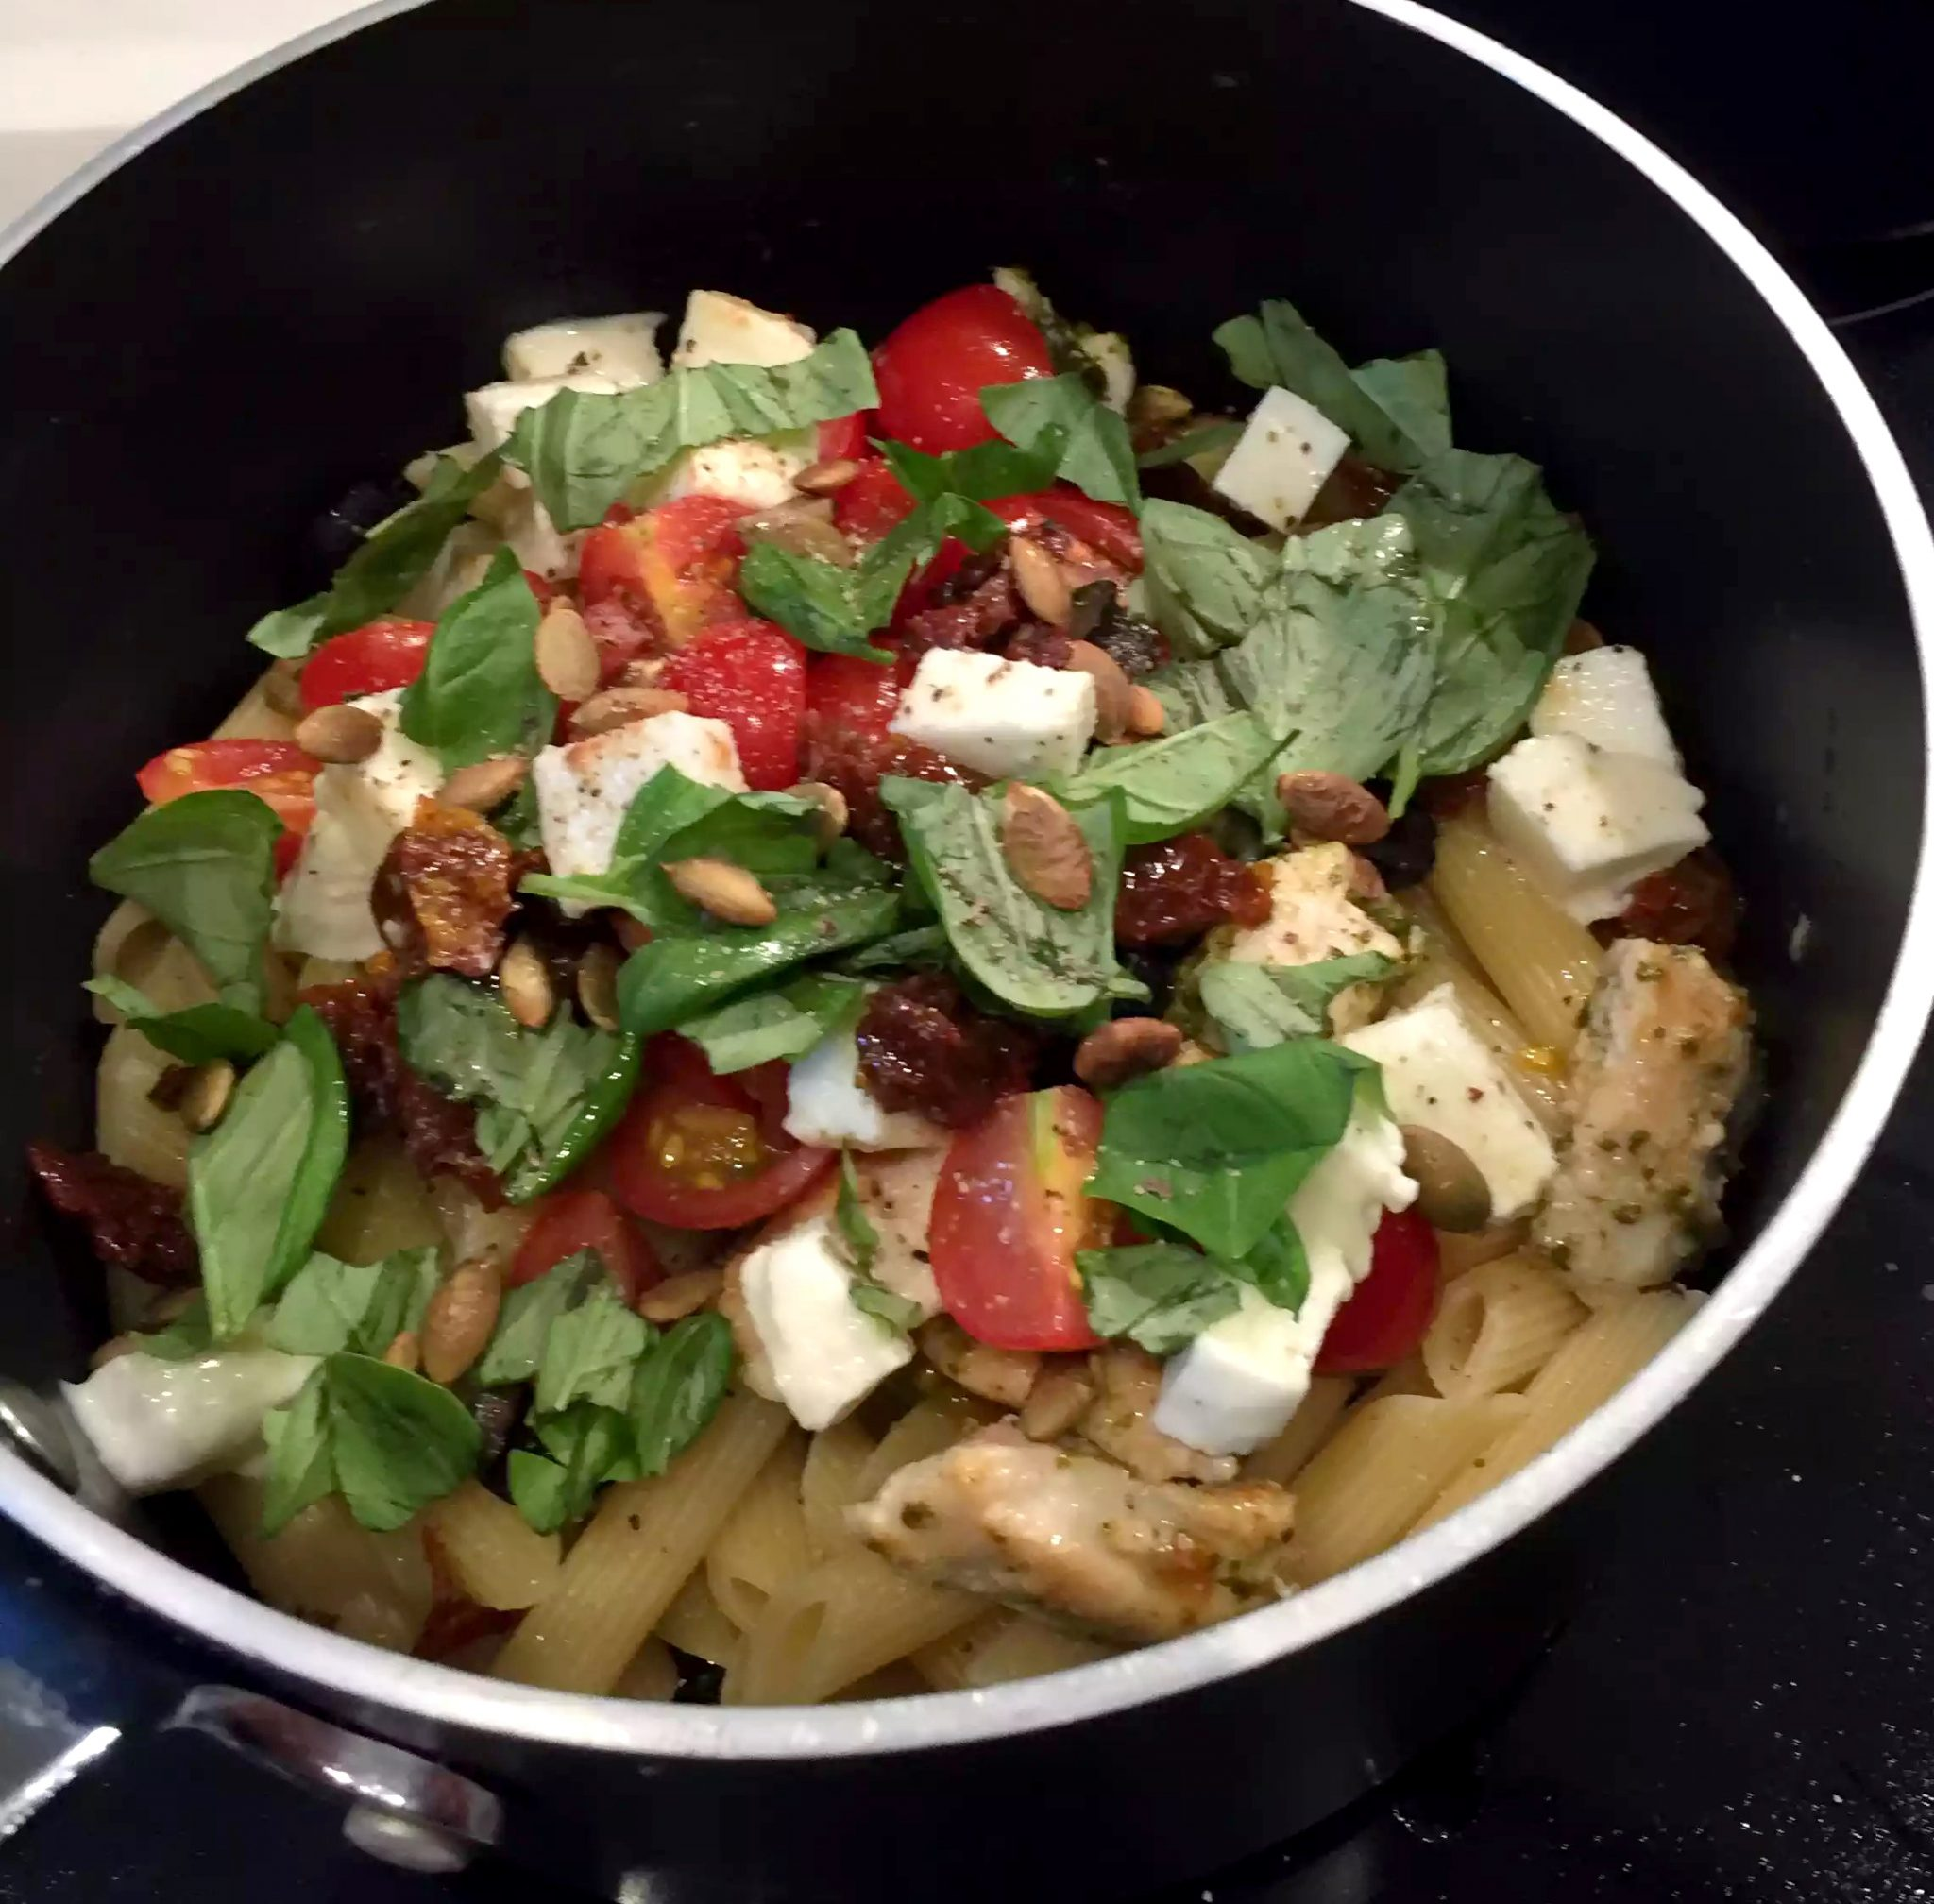 Caprese Chicken 'Pasta' Courgette Spaghetti Healthy Spiraliser Courgetti Spiralised Zucchini Mozzarella Tomatoes Cherry Sundried Olives Black Basil Pumpkin Seeds Italian SCD Paleo Clean Eating